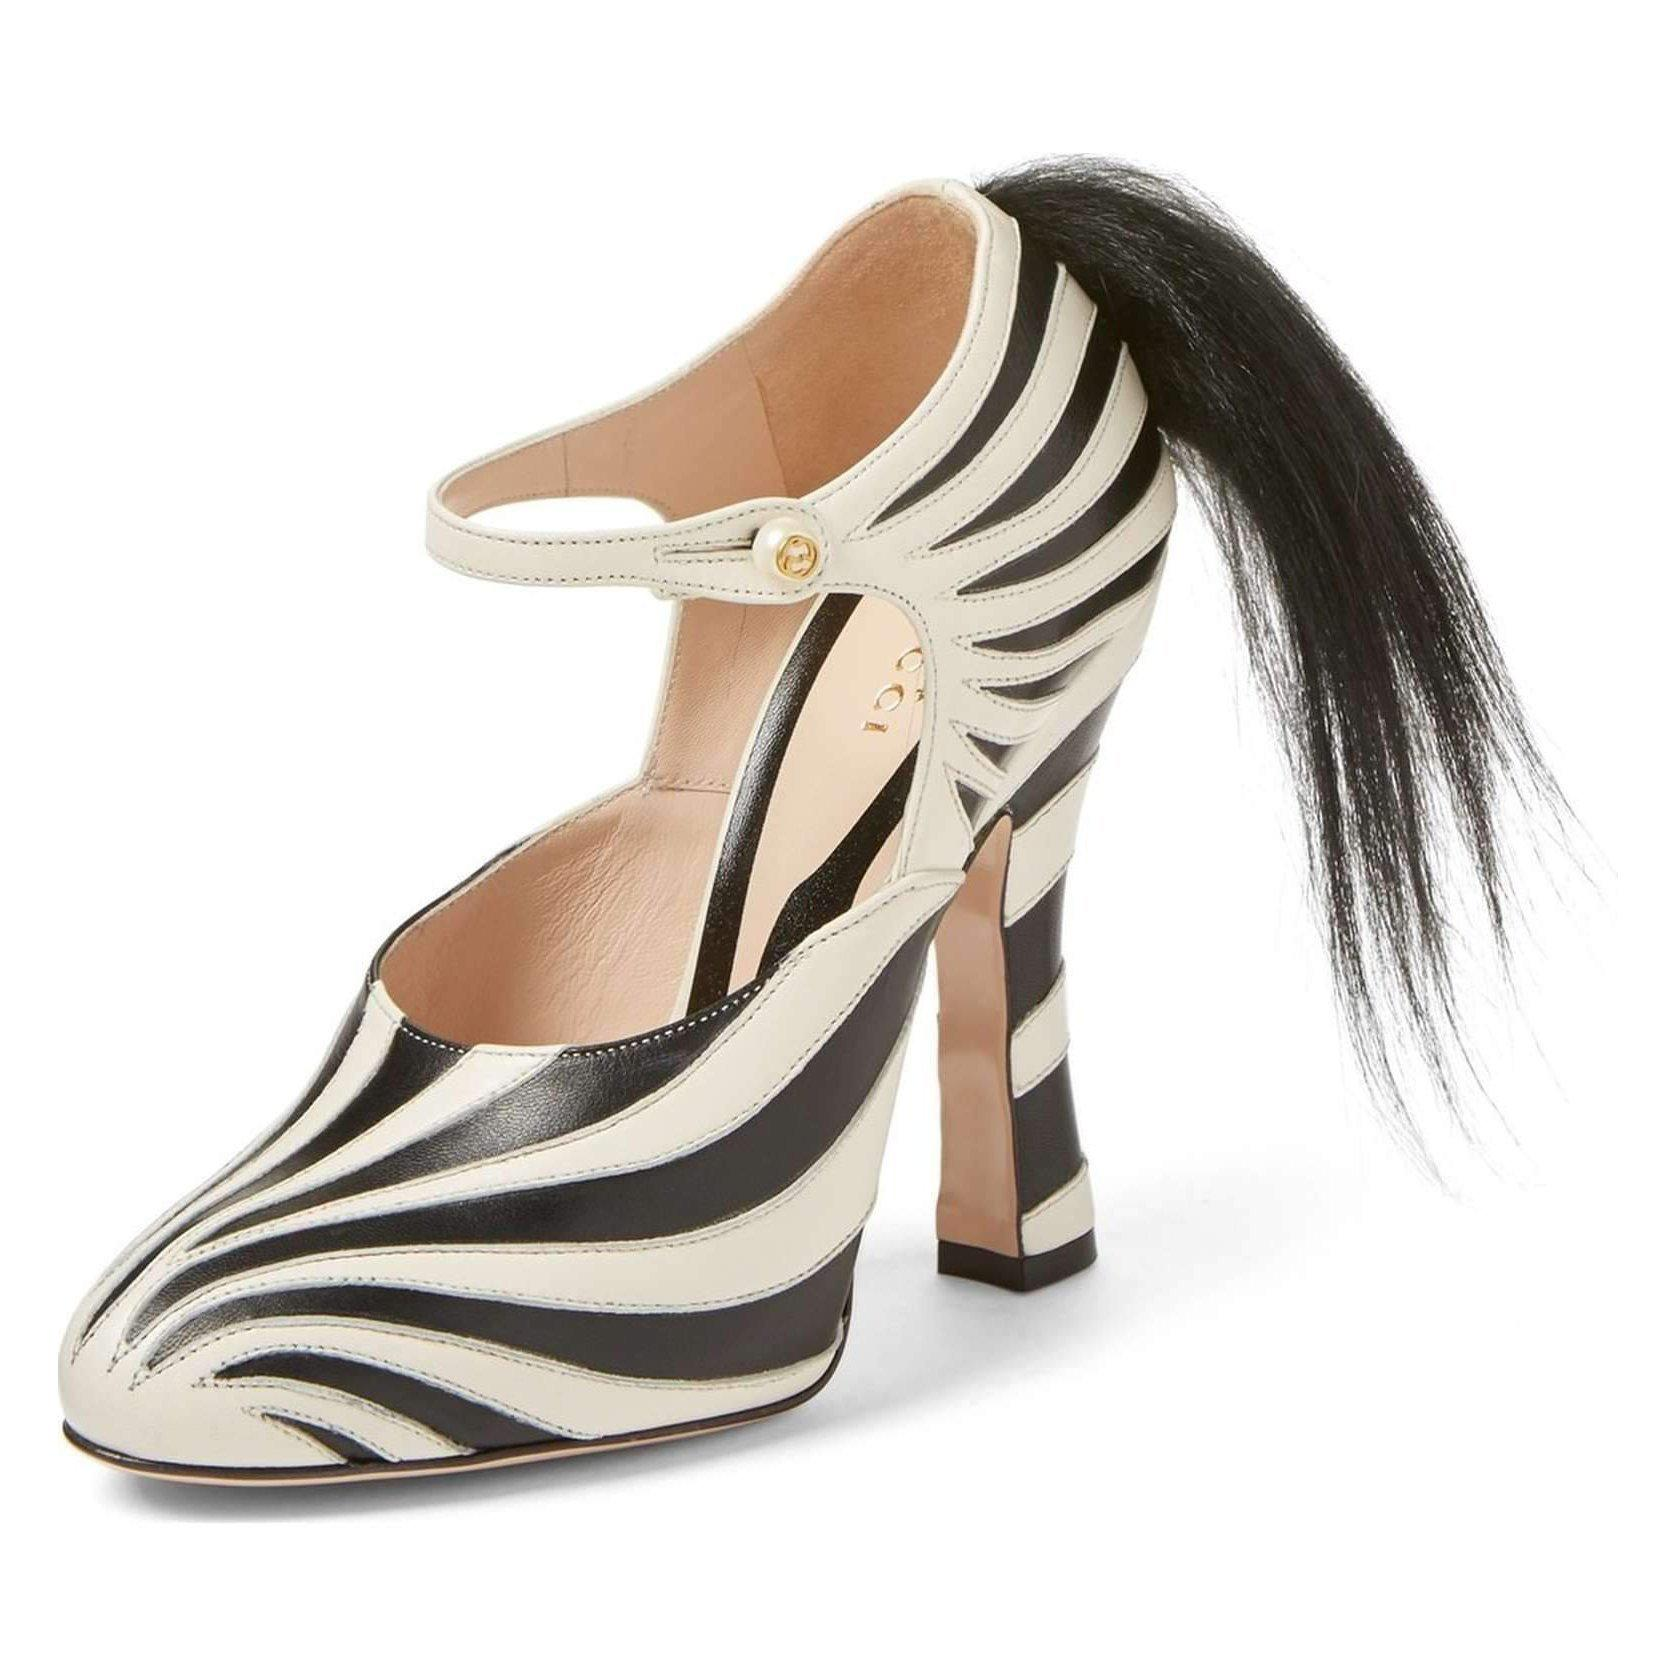 Gucci 'Lesley' Zebra Stripe Pump-Shoes-Gucci-6.5-ShoeShock